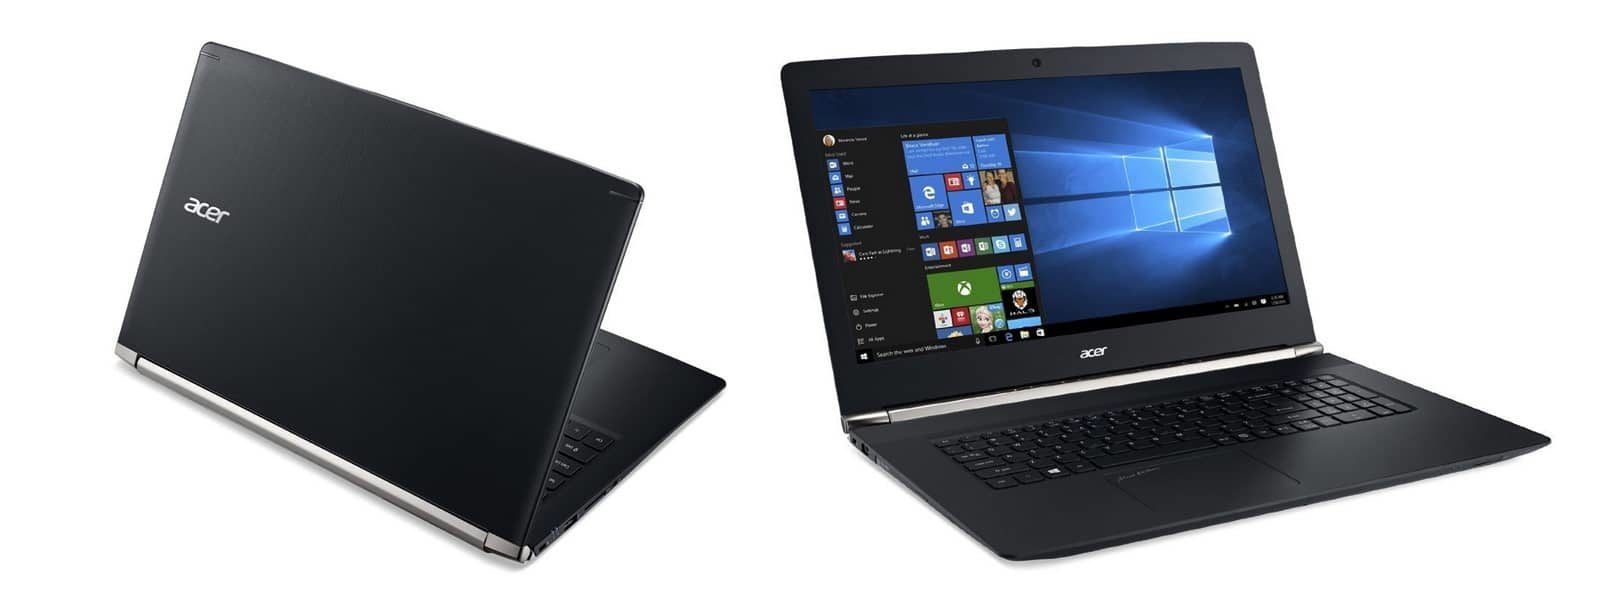 The Acer Aspire Nitros strike a fine balance between portability, features and hardware specs, and sell for the right prices as well